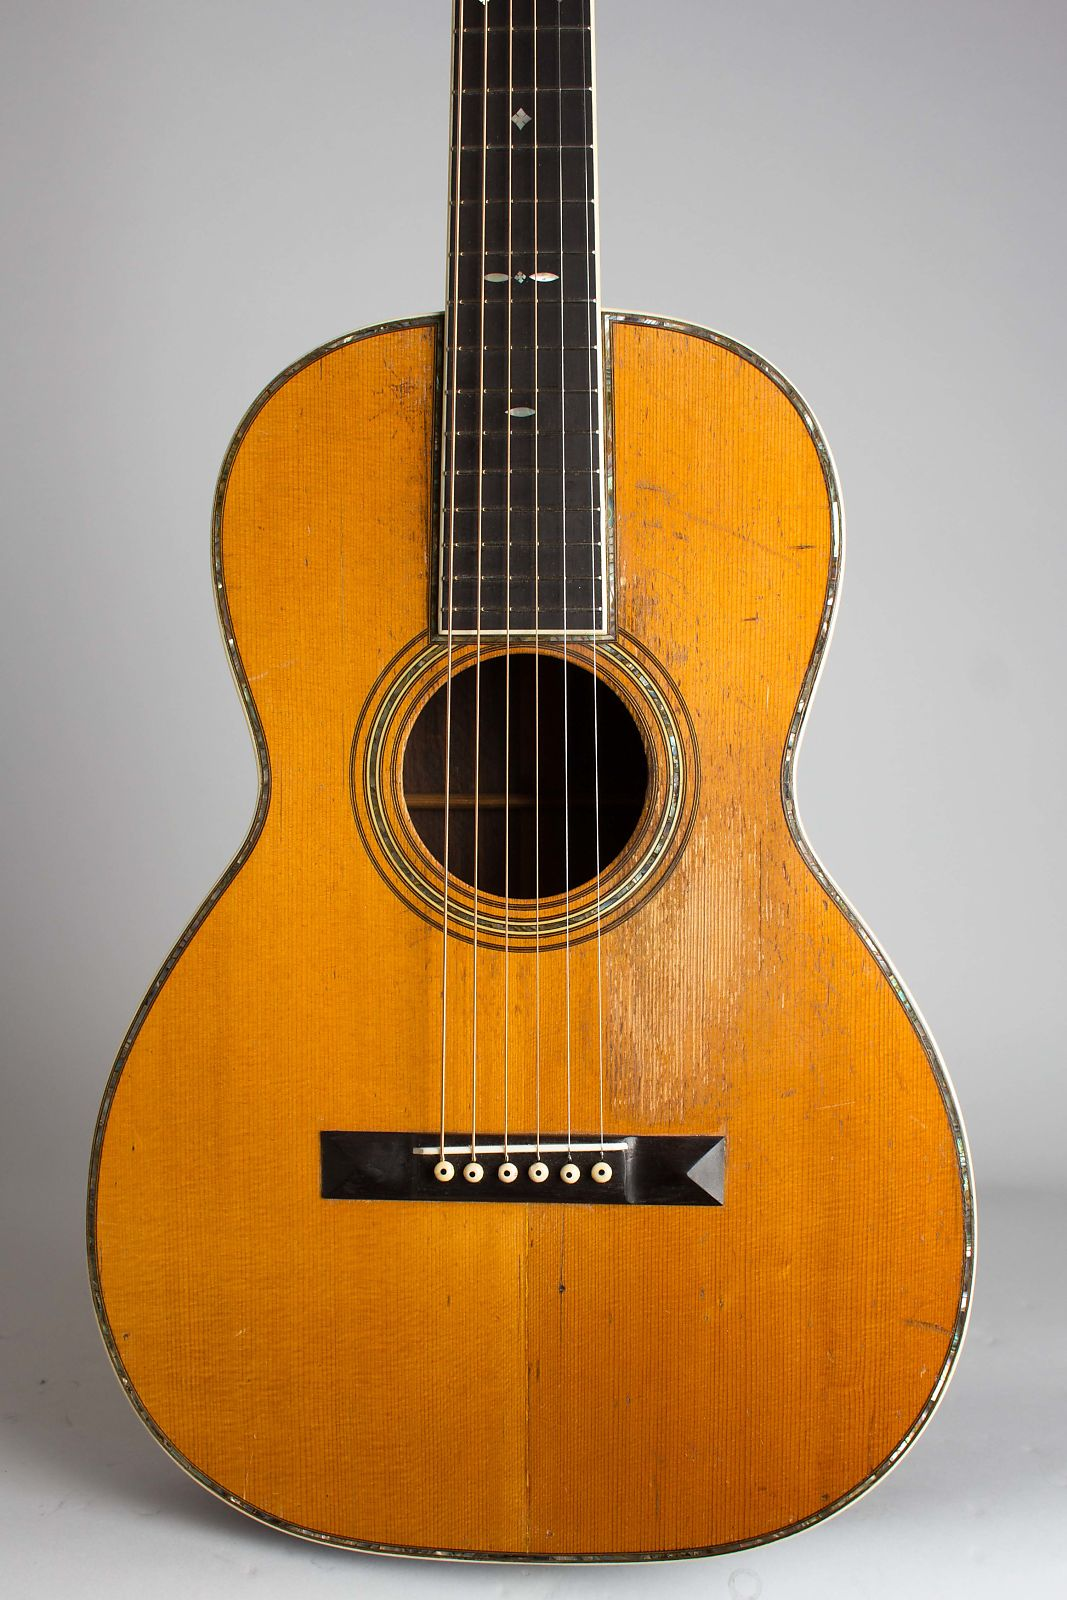 C. F. Martin  0-42 Flat Top Acoustic Guitar (1929), ser. #39862, black hard shell case.